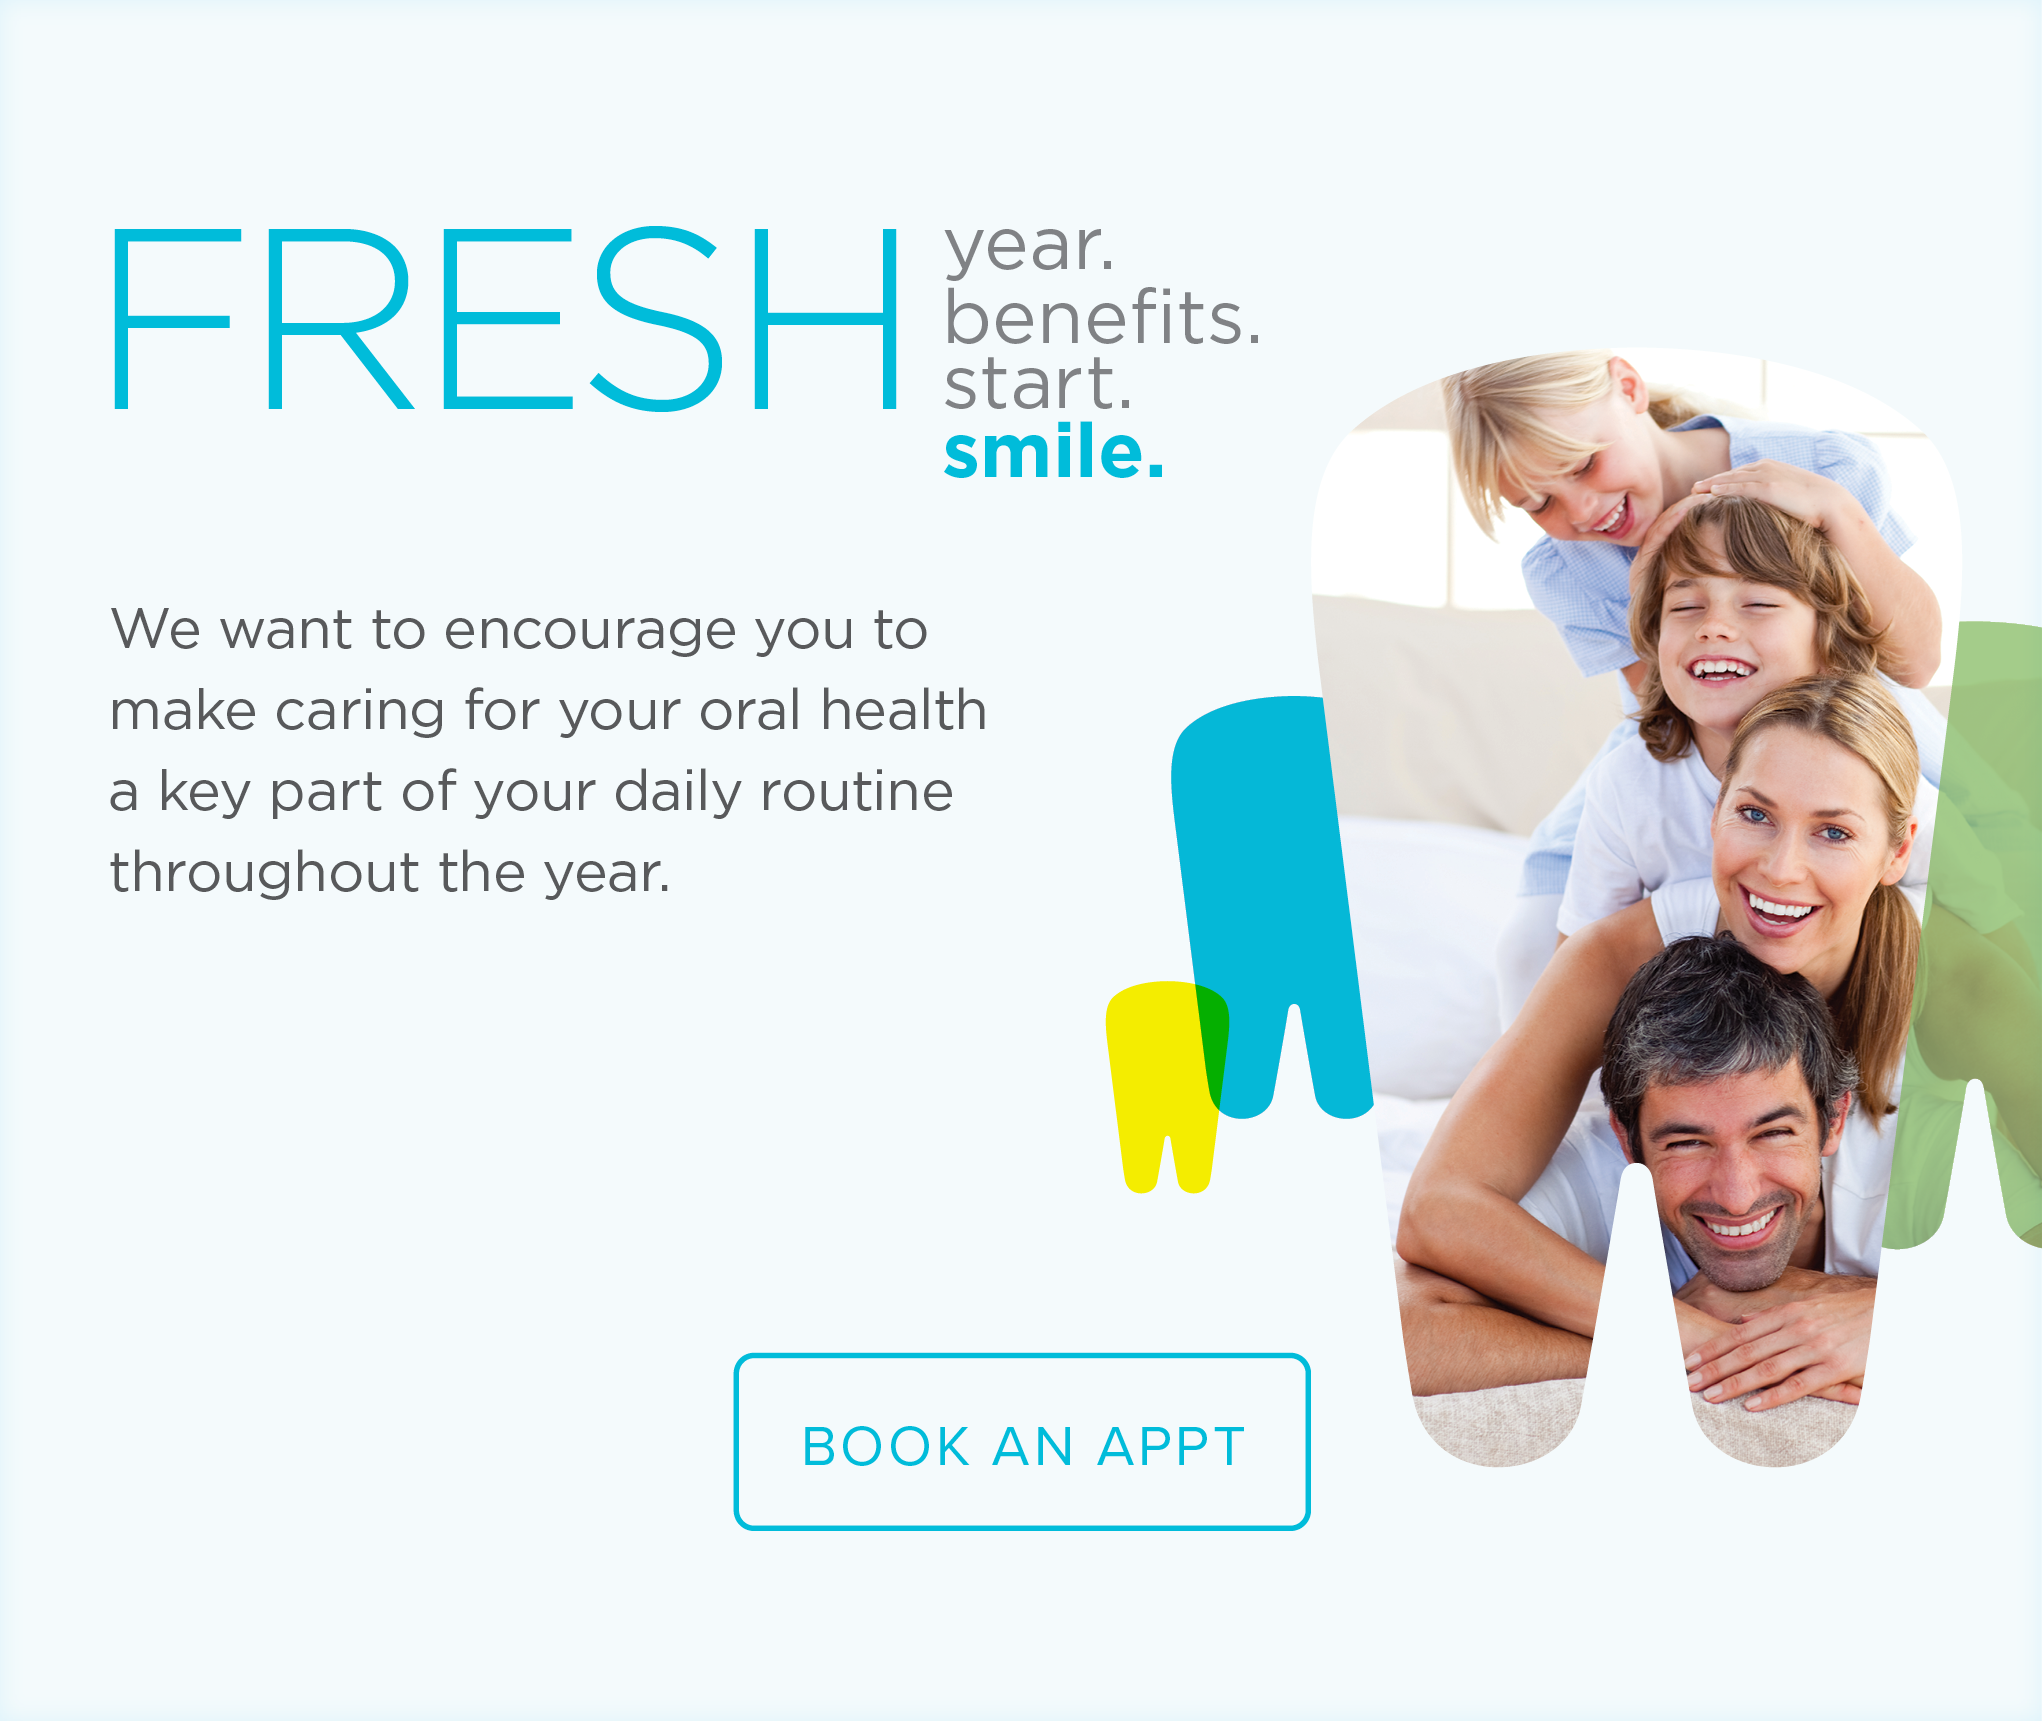 Modern Dentistry of Northfield - Make the Most of Your Benefits